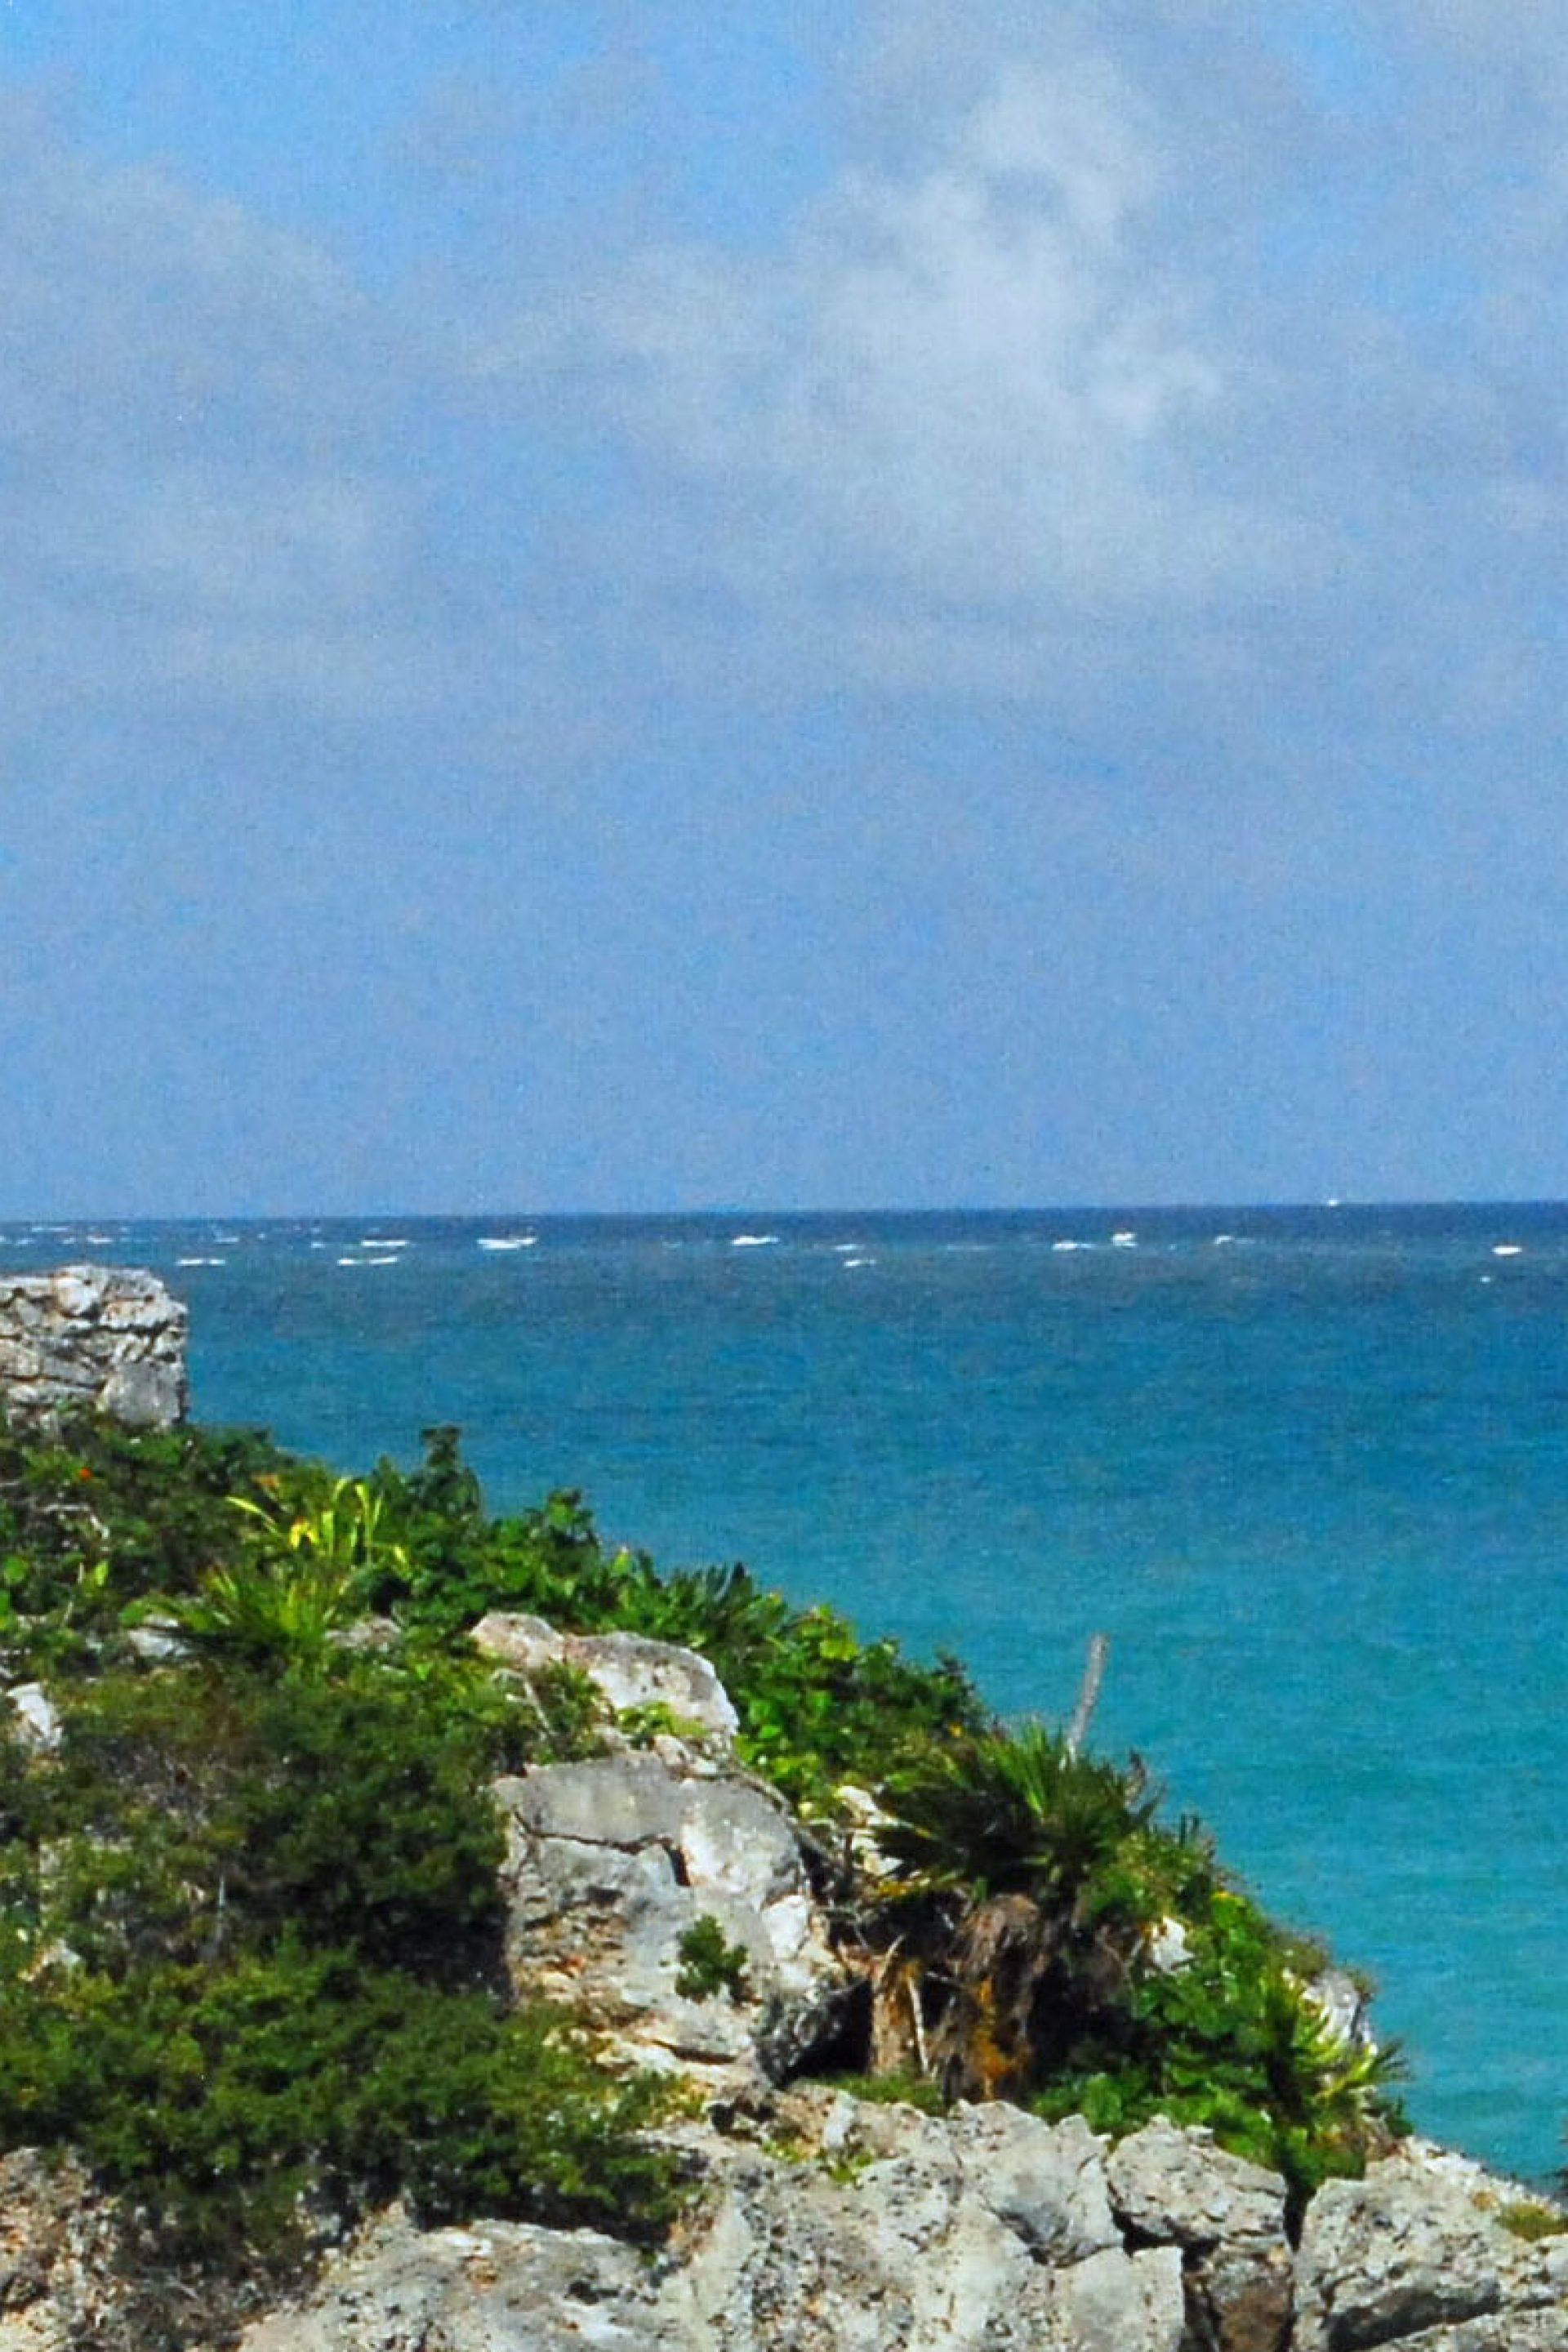 Templo Dios del Viento guarding Tulum sea entrance